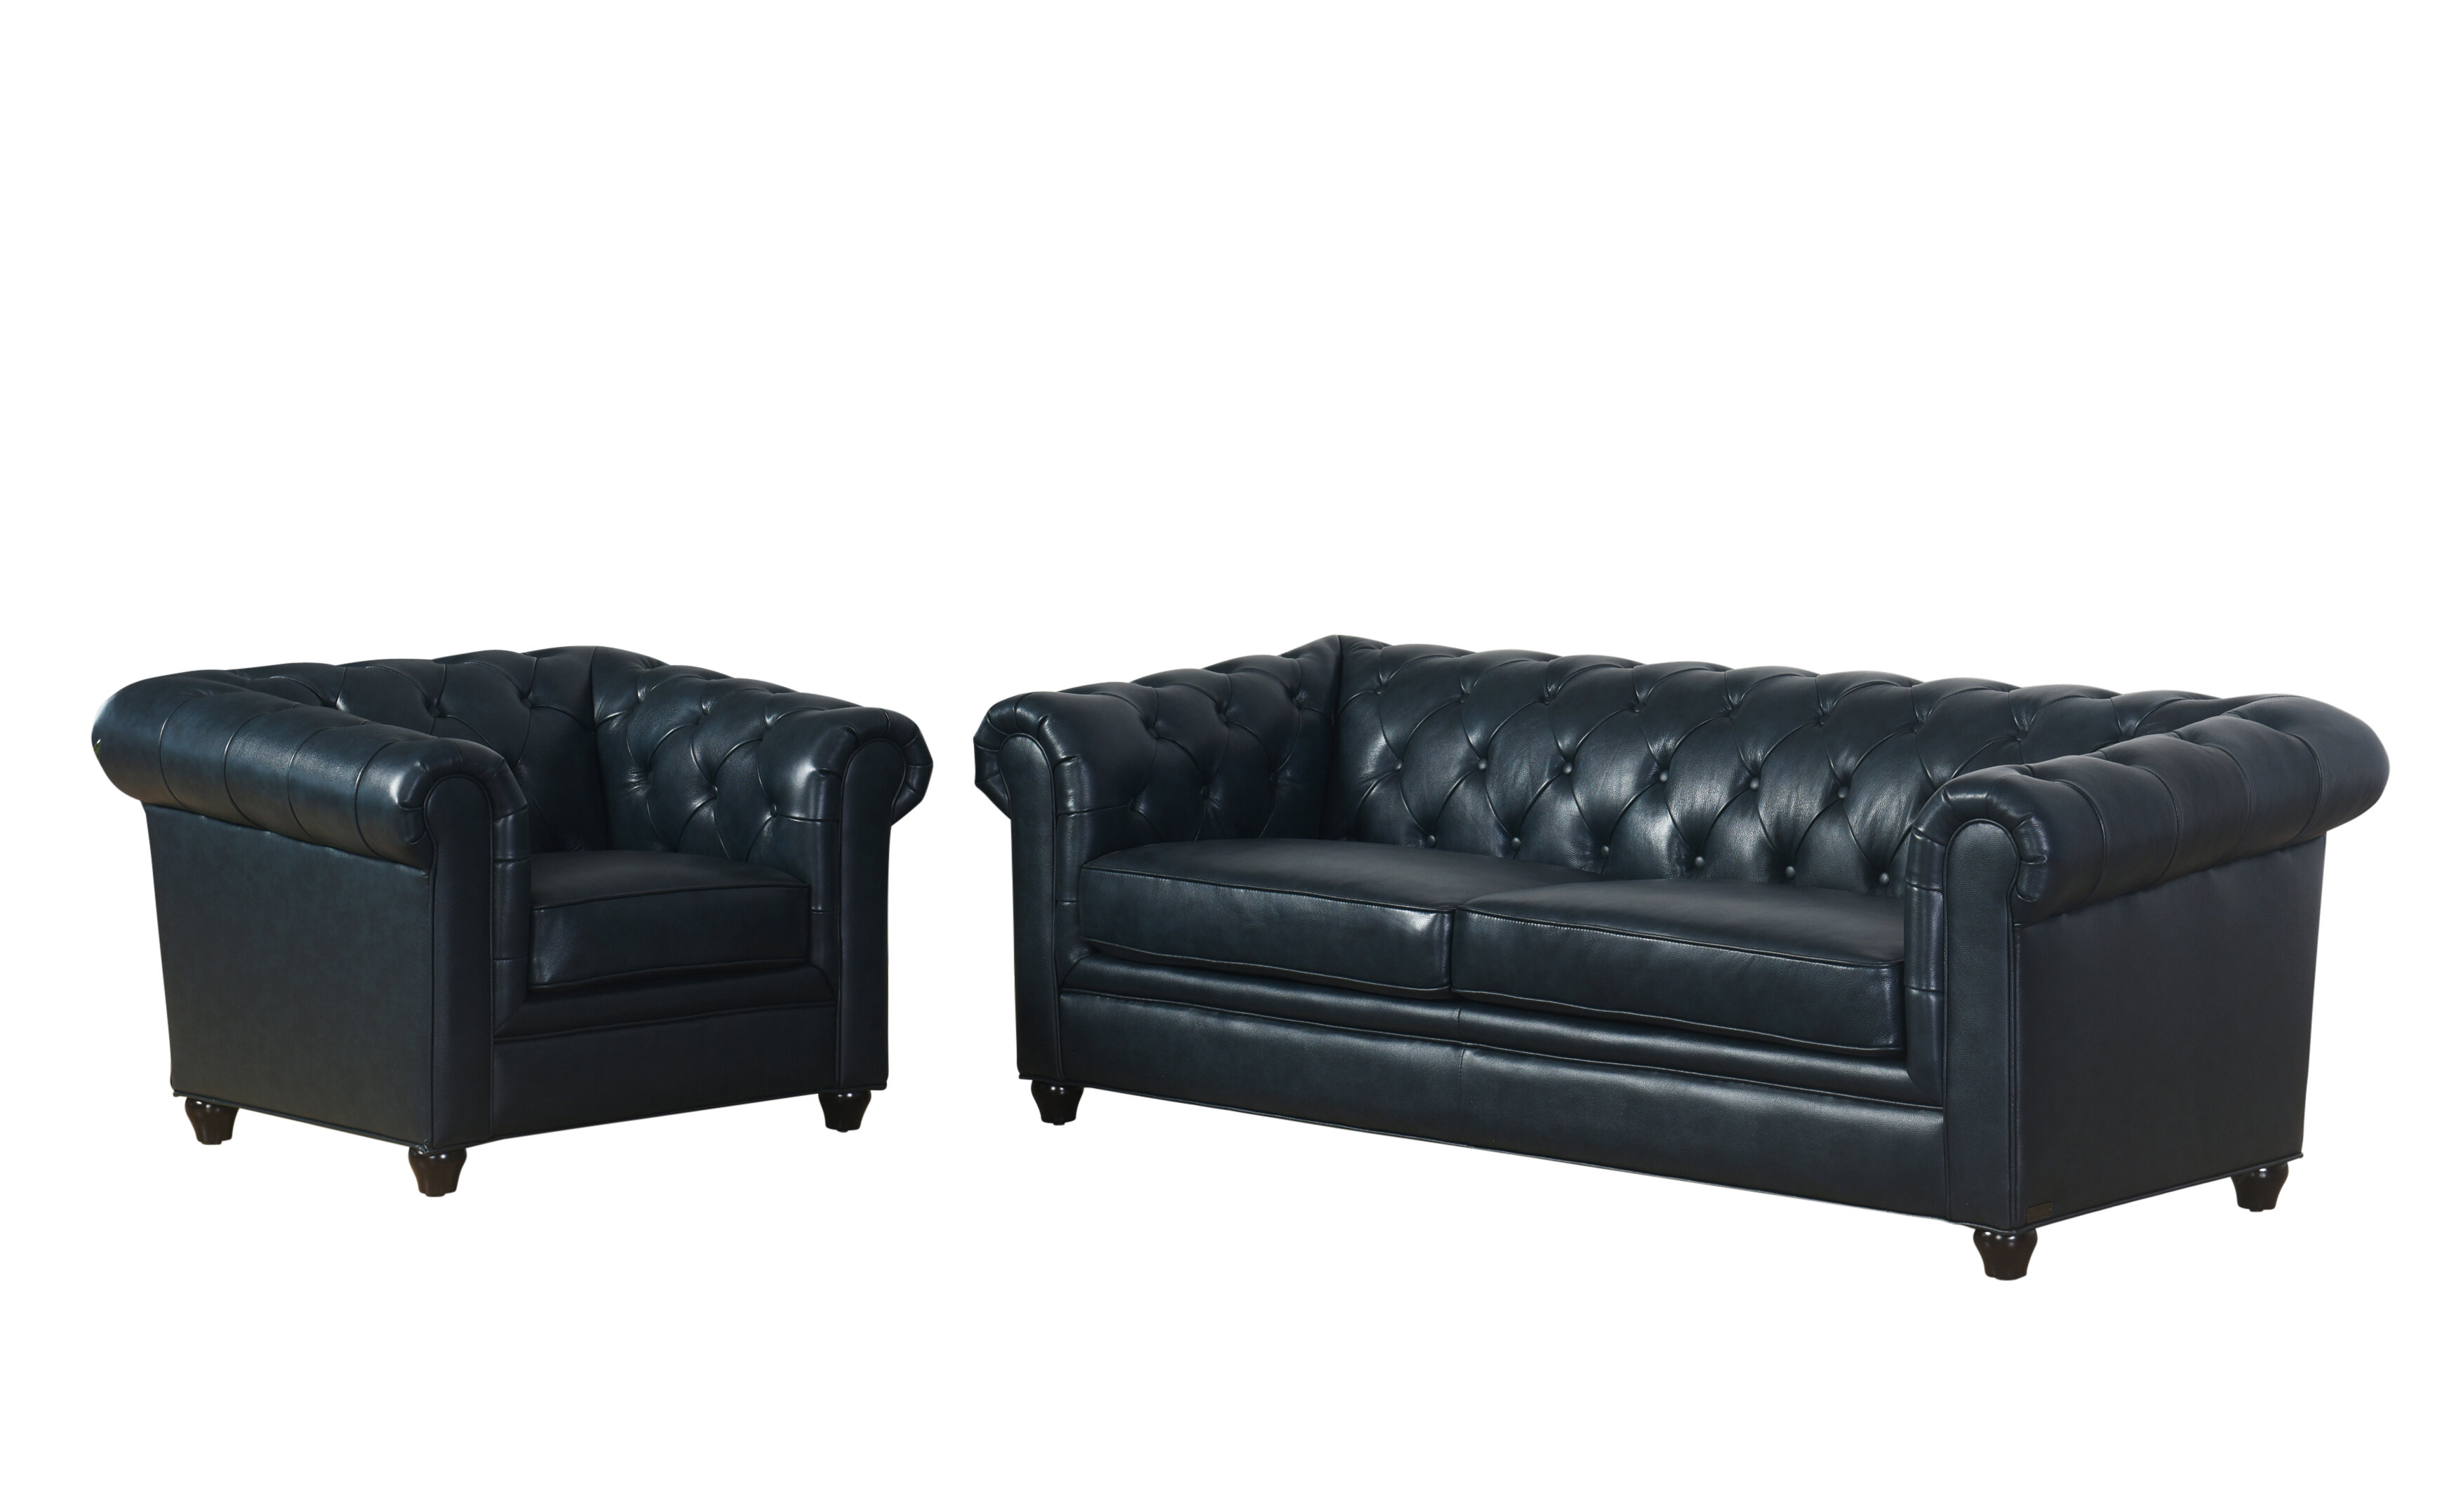 Darby Home Co Andria 2 Piece Leather Chesterfield Living Room Set ...